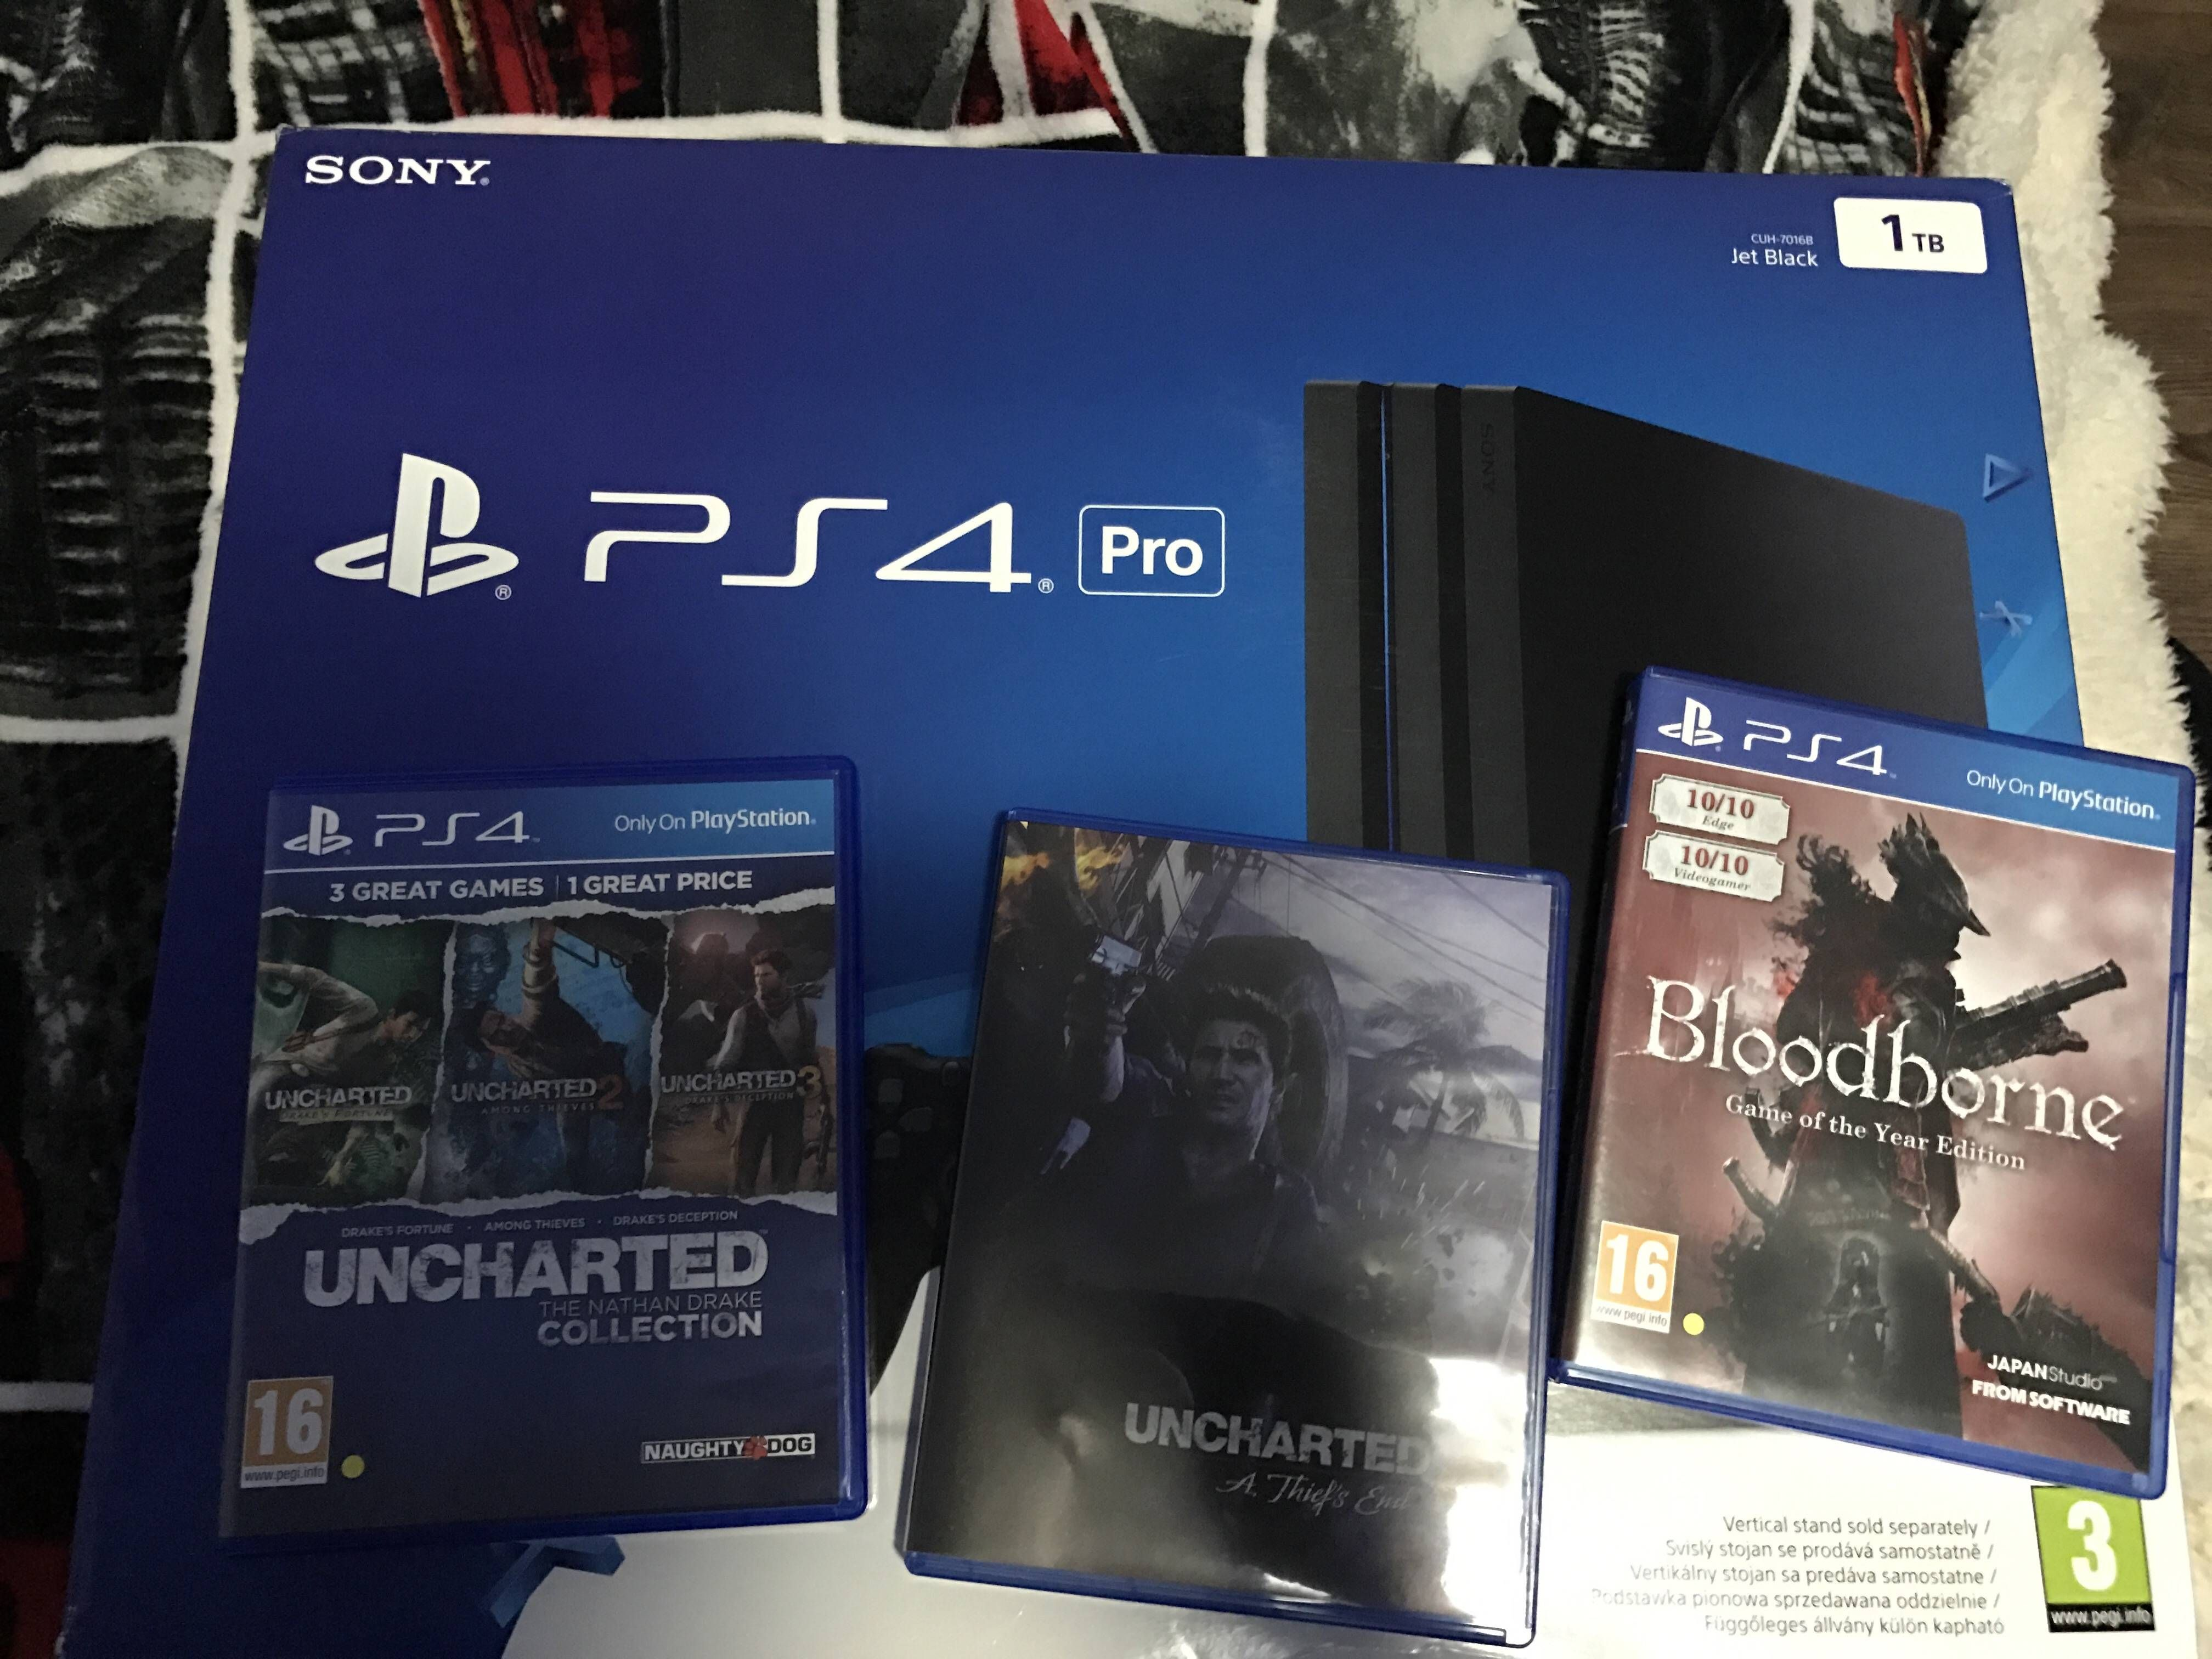 PS4PRO] [IMAGE] Never owned a console before I read PS4 has